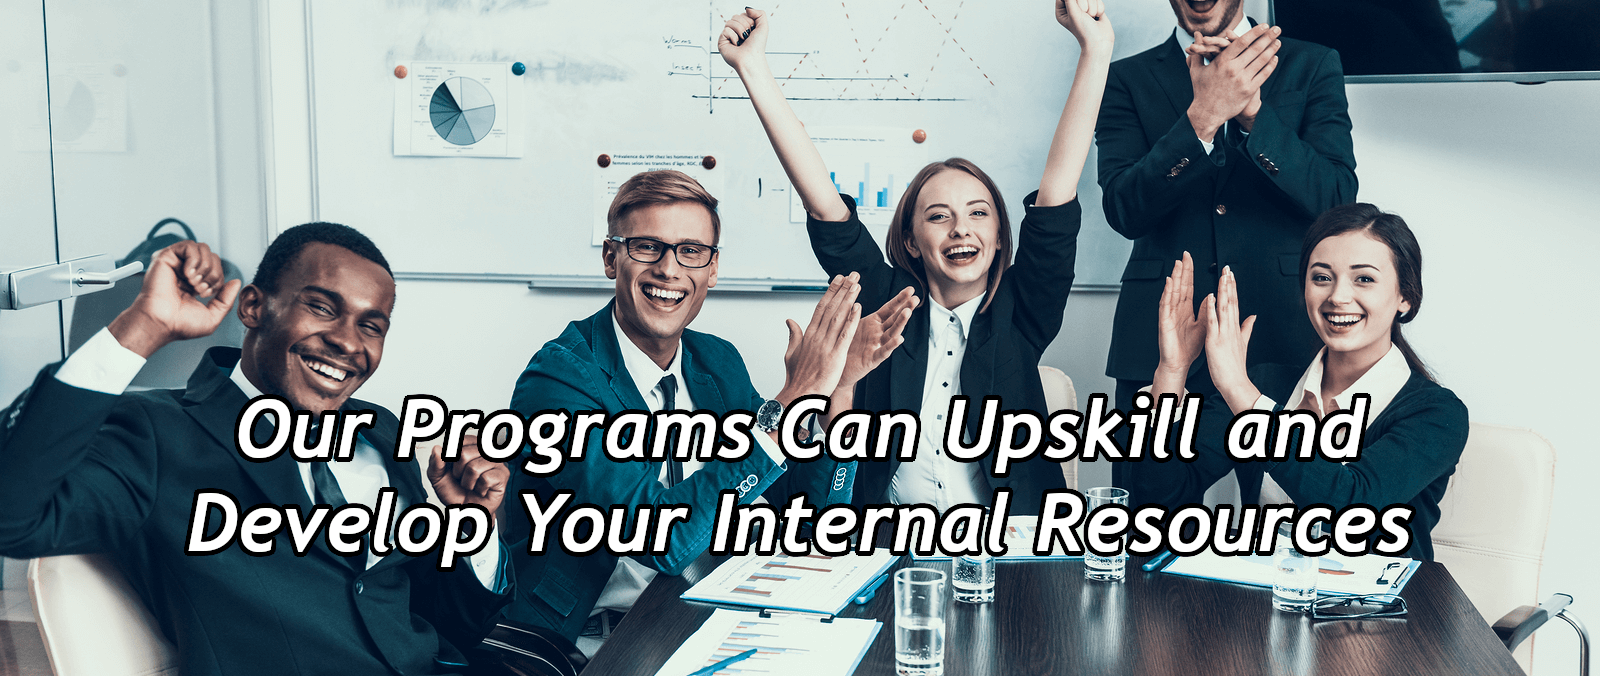 Upskill Your Internal Resources